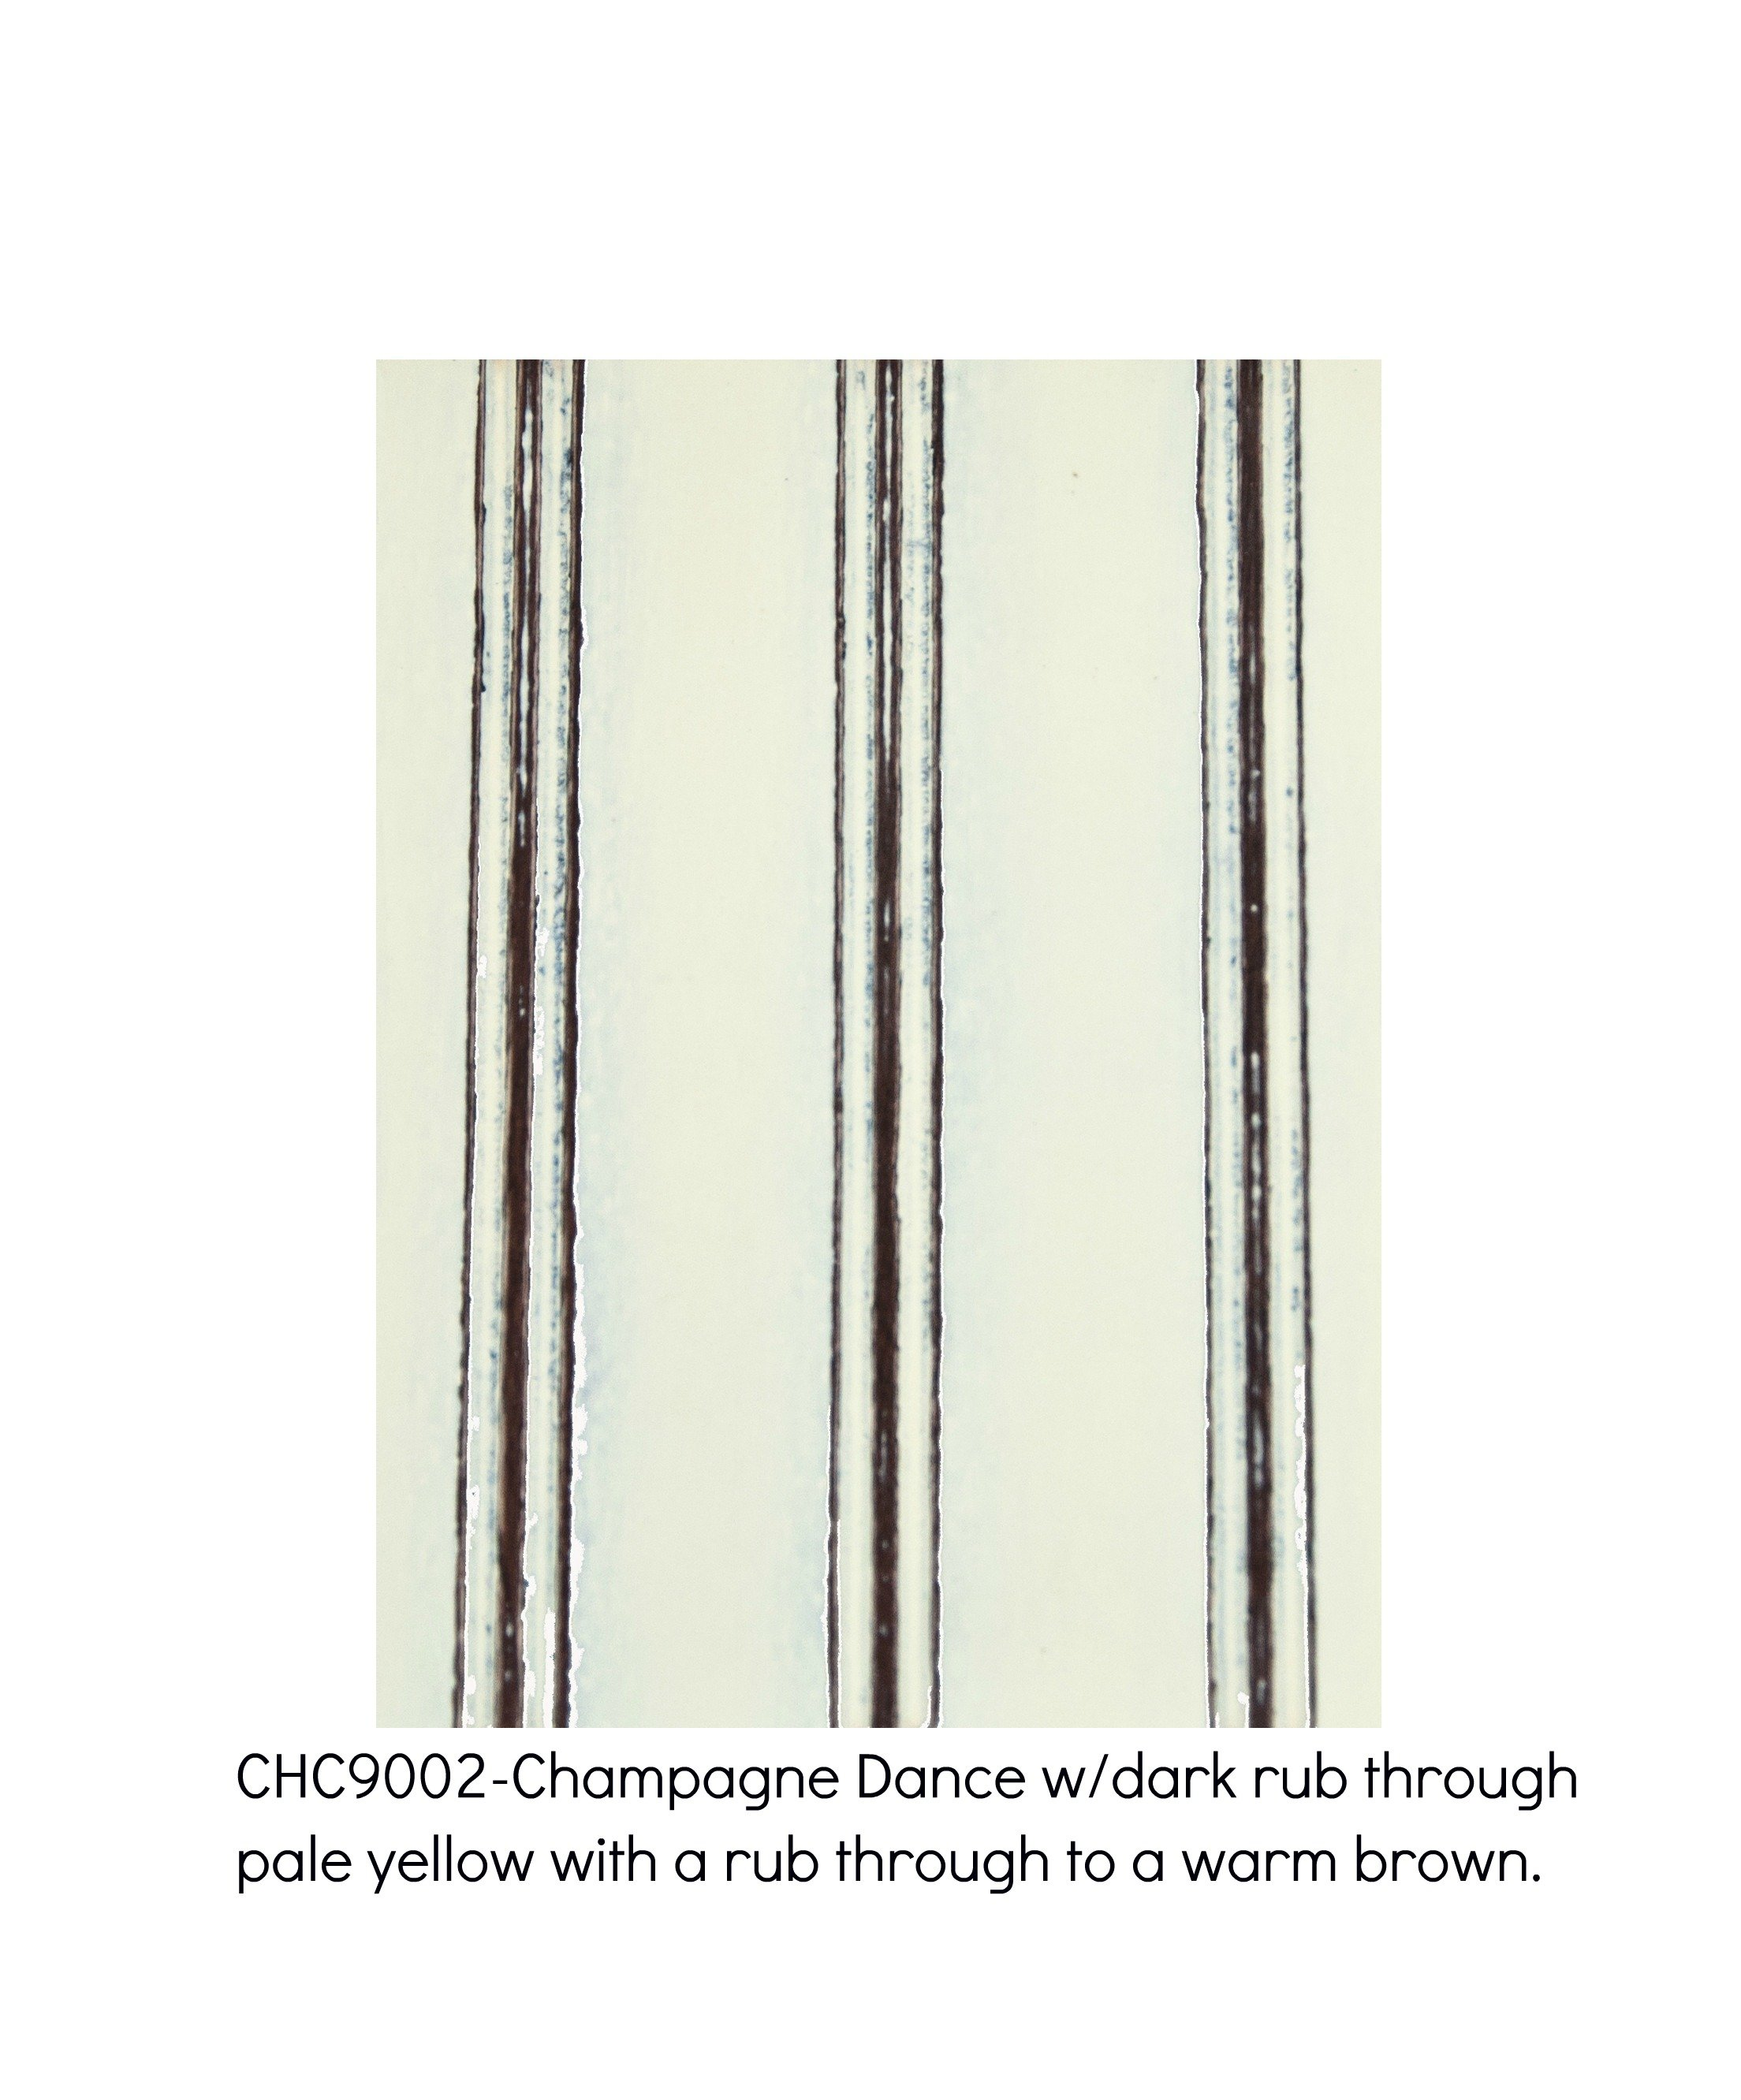 Champagne Dance 9002-Champagne Dance with a rub through to a warm brown